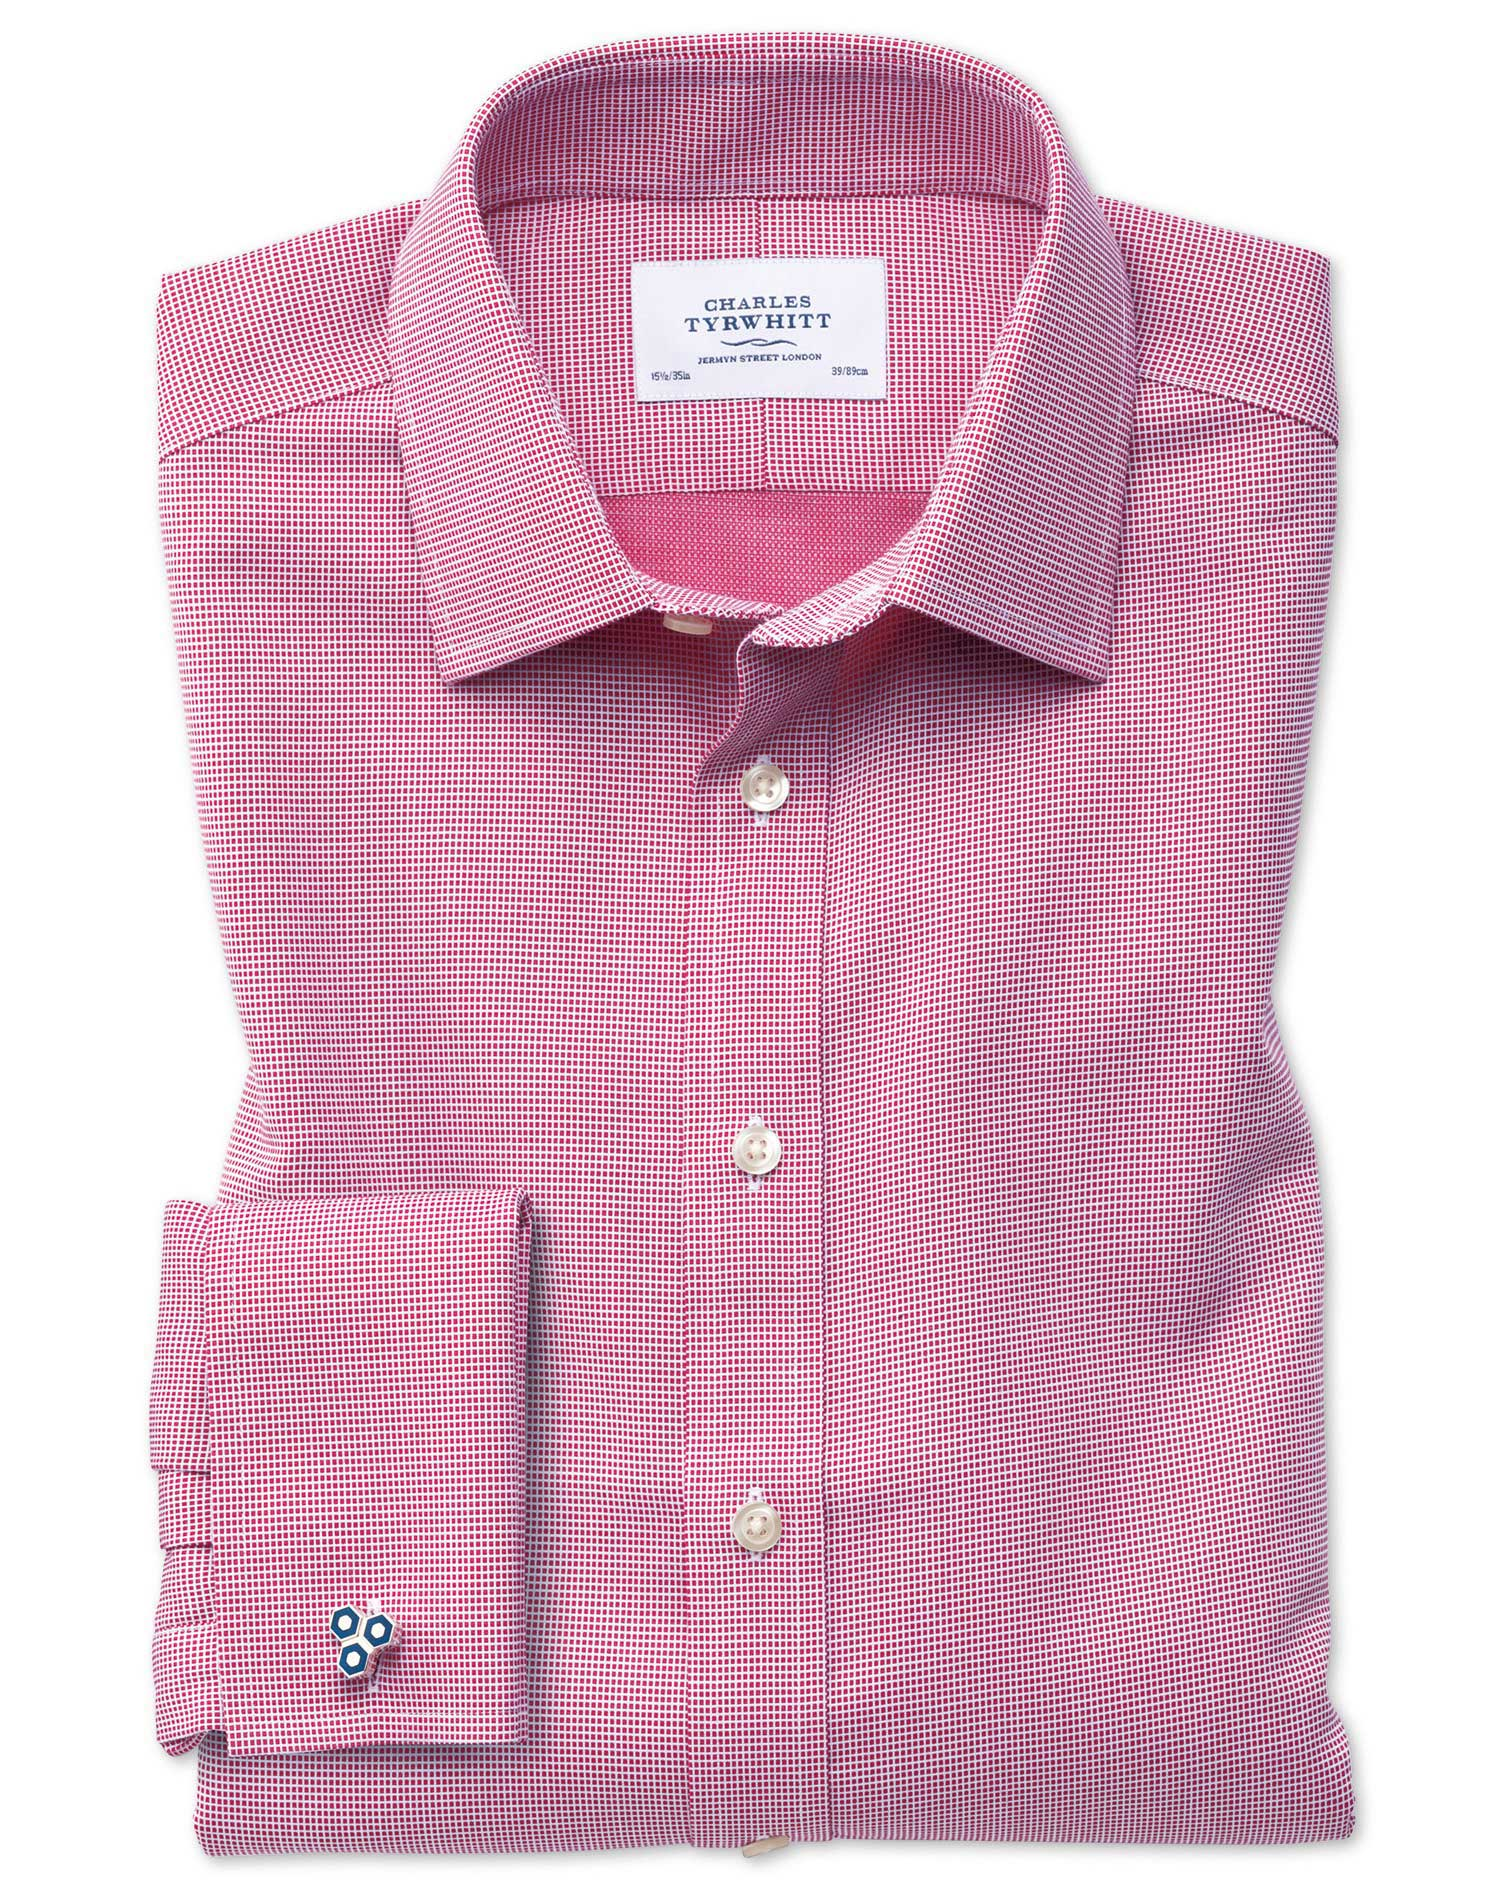 Classic Fit Non-Iron Square Weave Magenta Cotton Formal Shirt Double Cuff Size 16/33 by Charles Tyrw